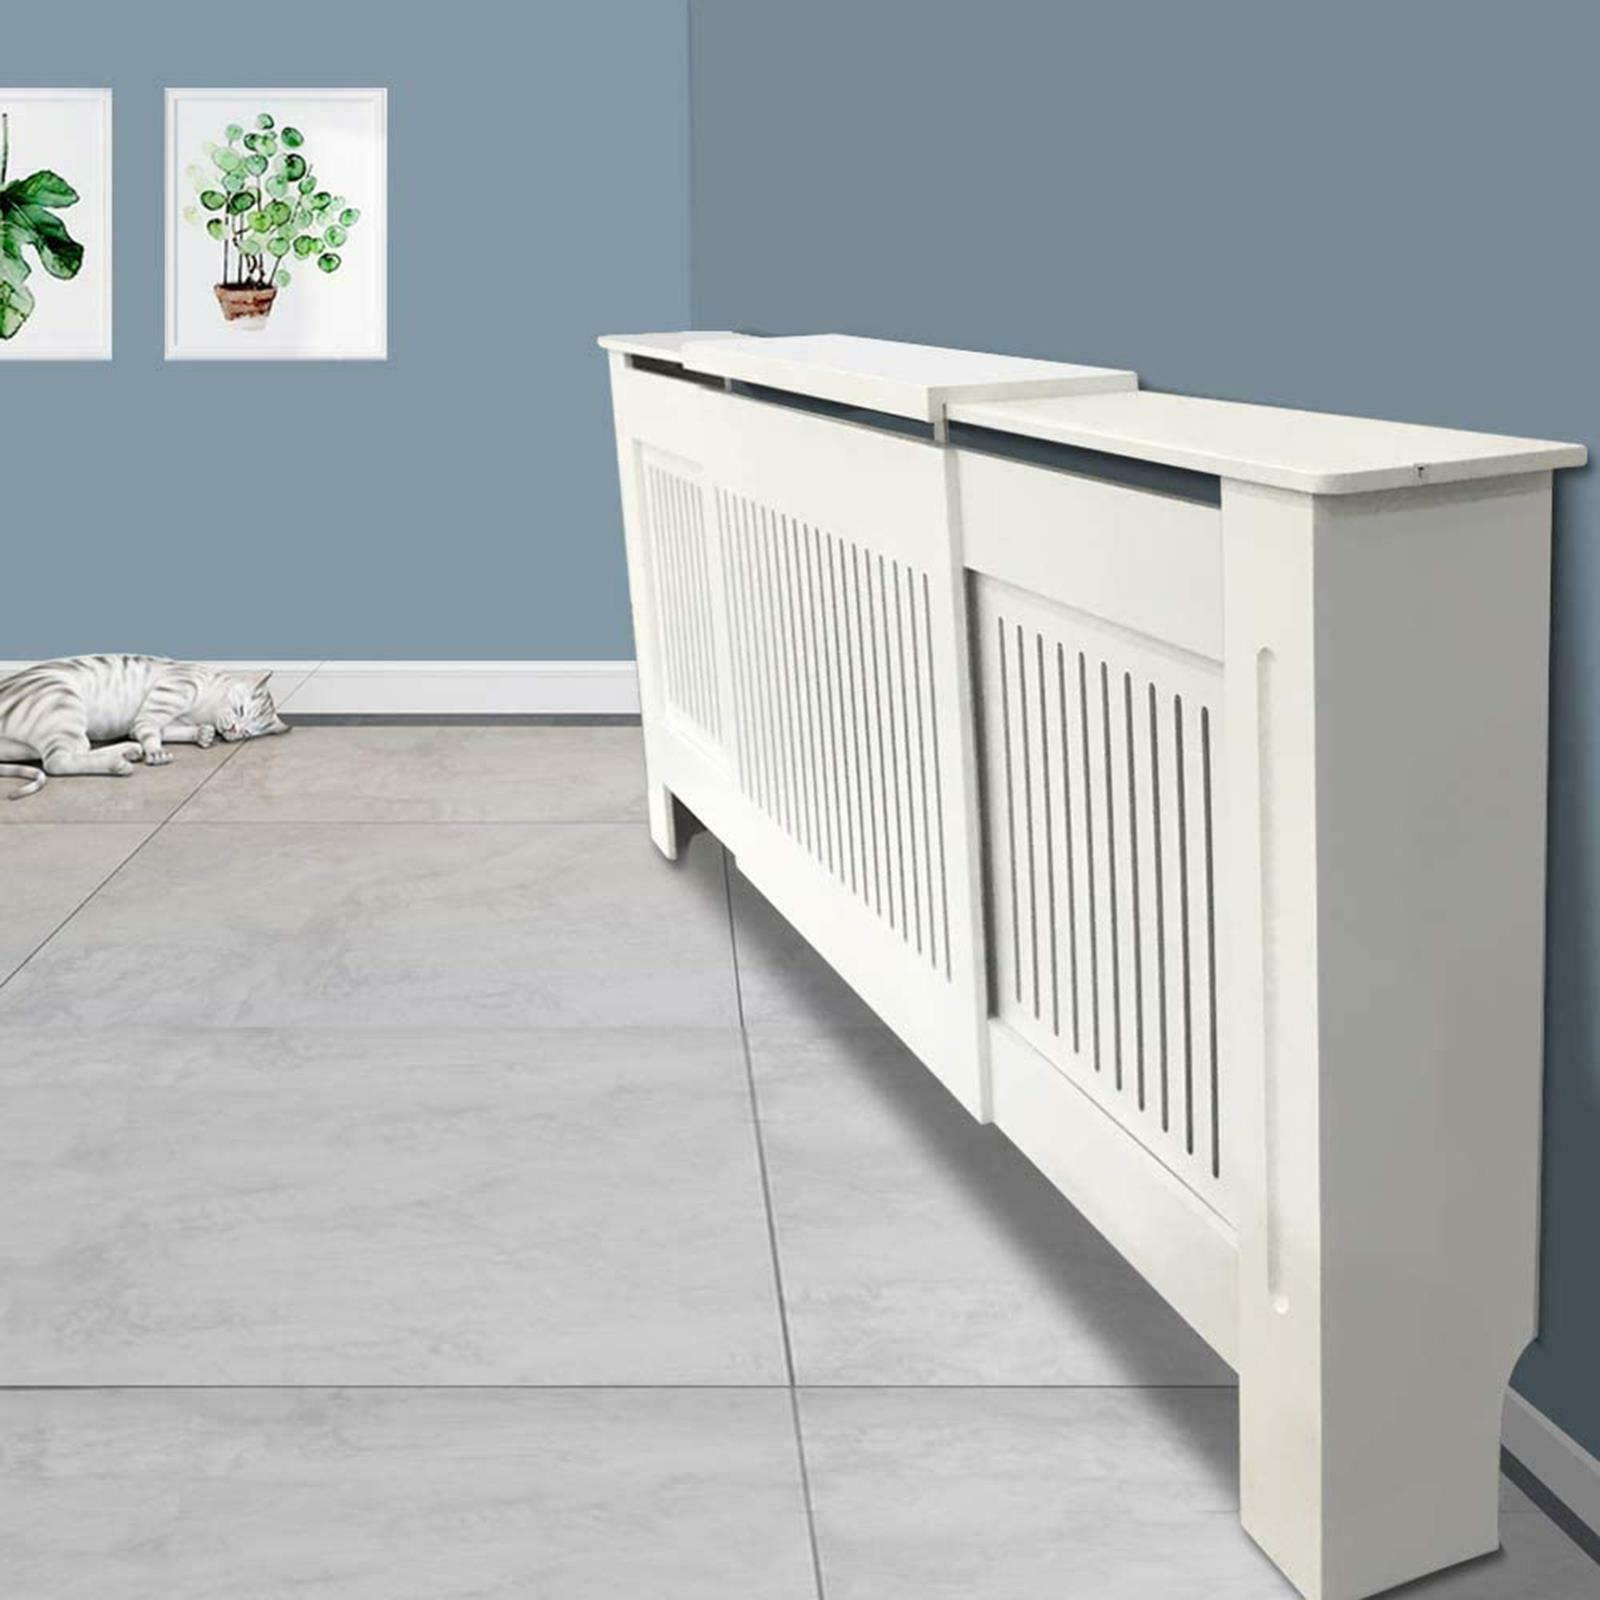 White-Radiator-Cover-Cabinet-Small-Large-Modern-MDF-Slat-Wood-Grill-Furniture miniatuur 37